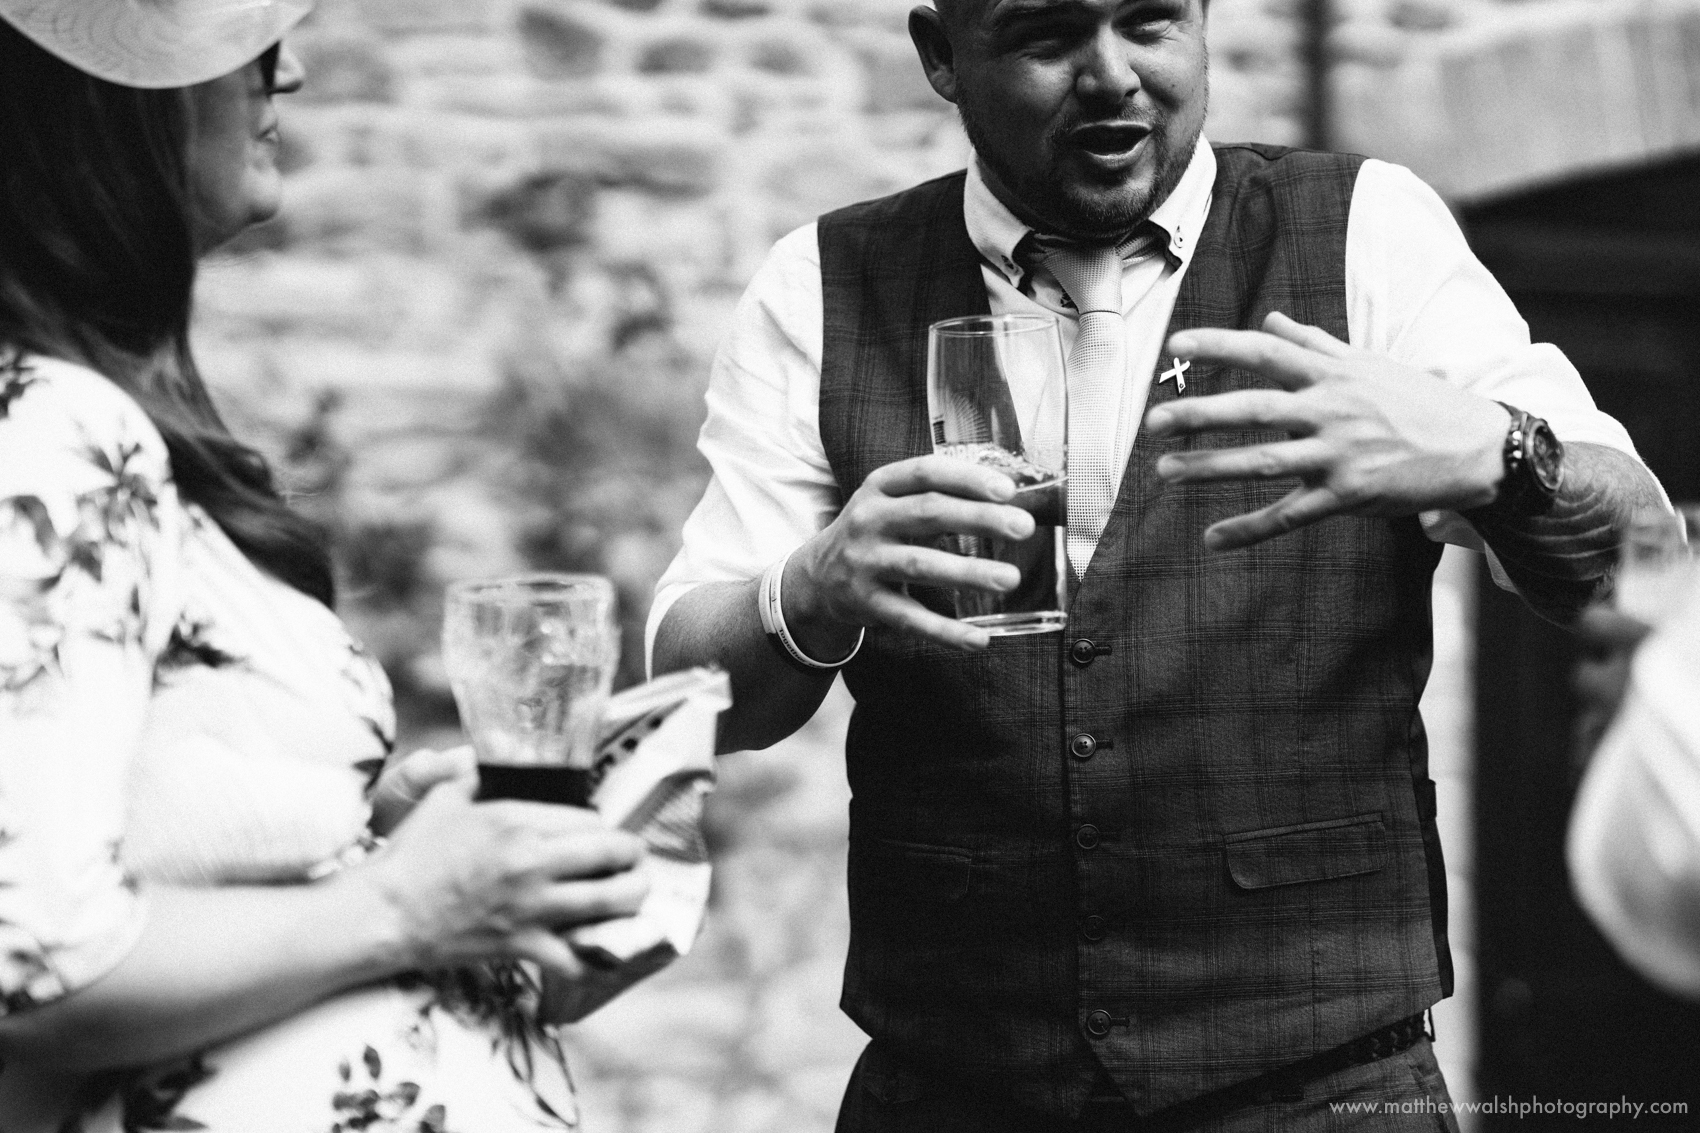 A guest getting quite animated as he tells a story to another wedding guest